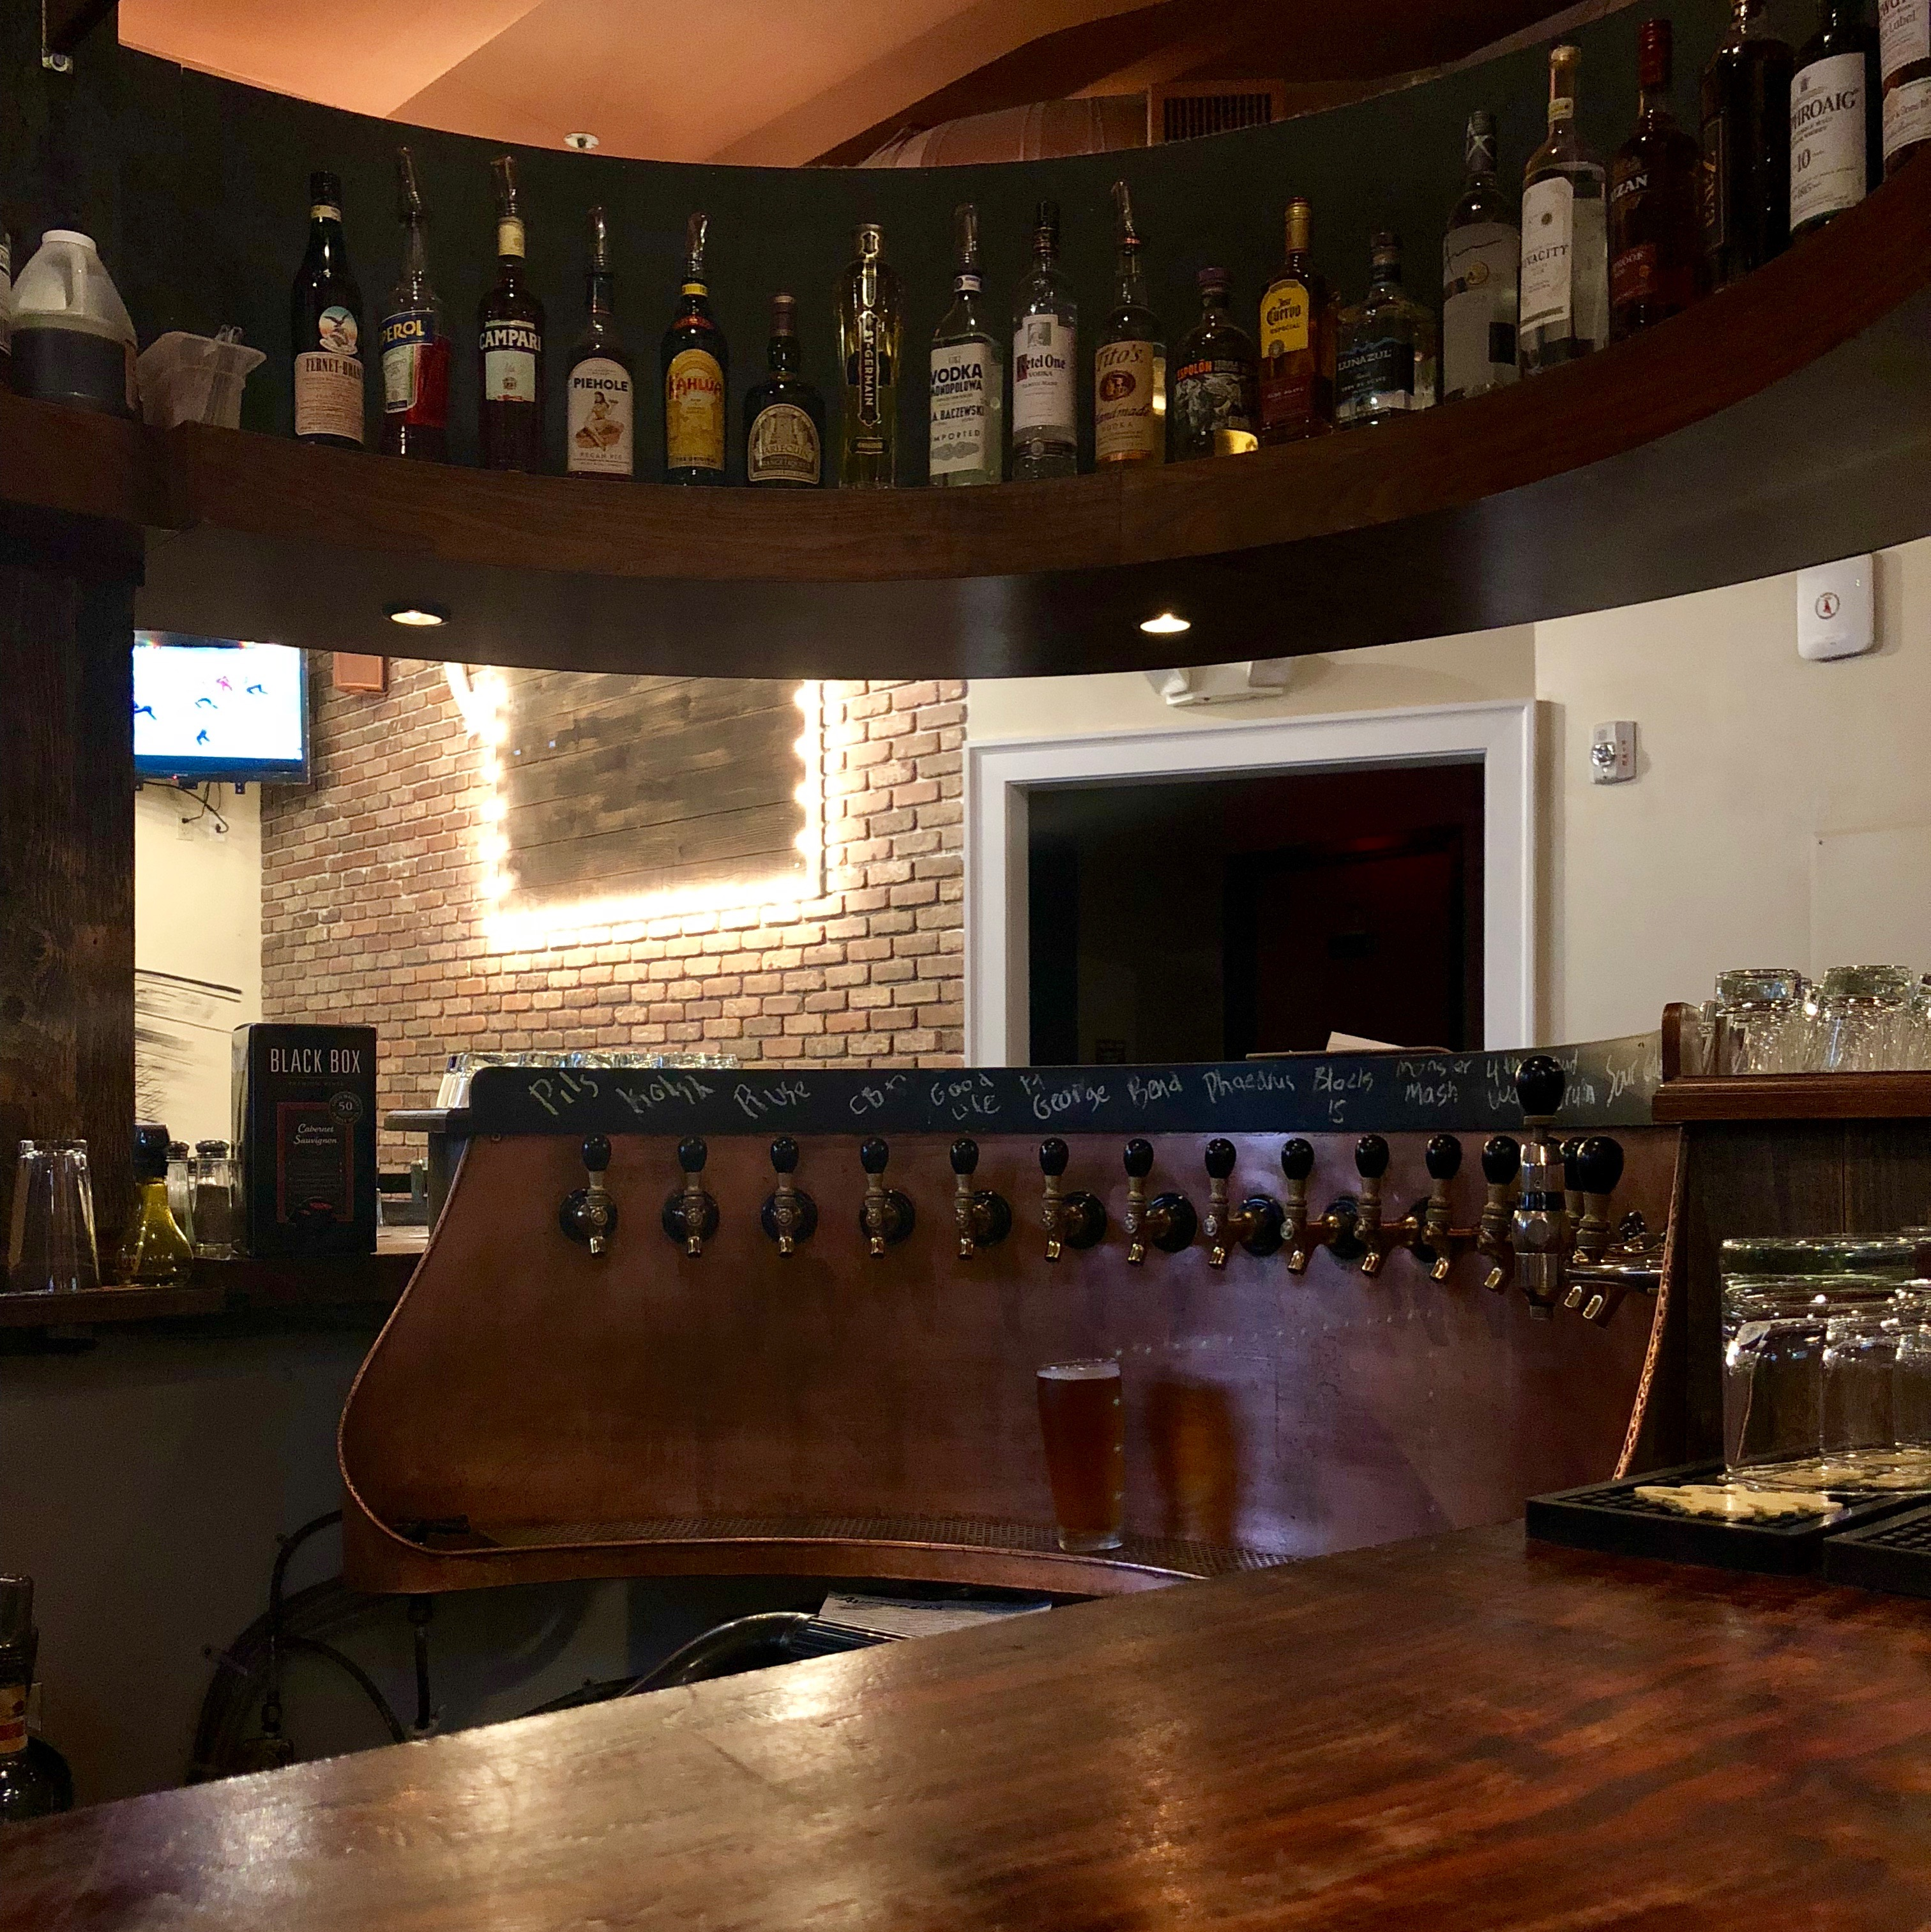 The taps remain the same from its Lompoc days at Avenue 23 Tap & Table.